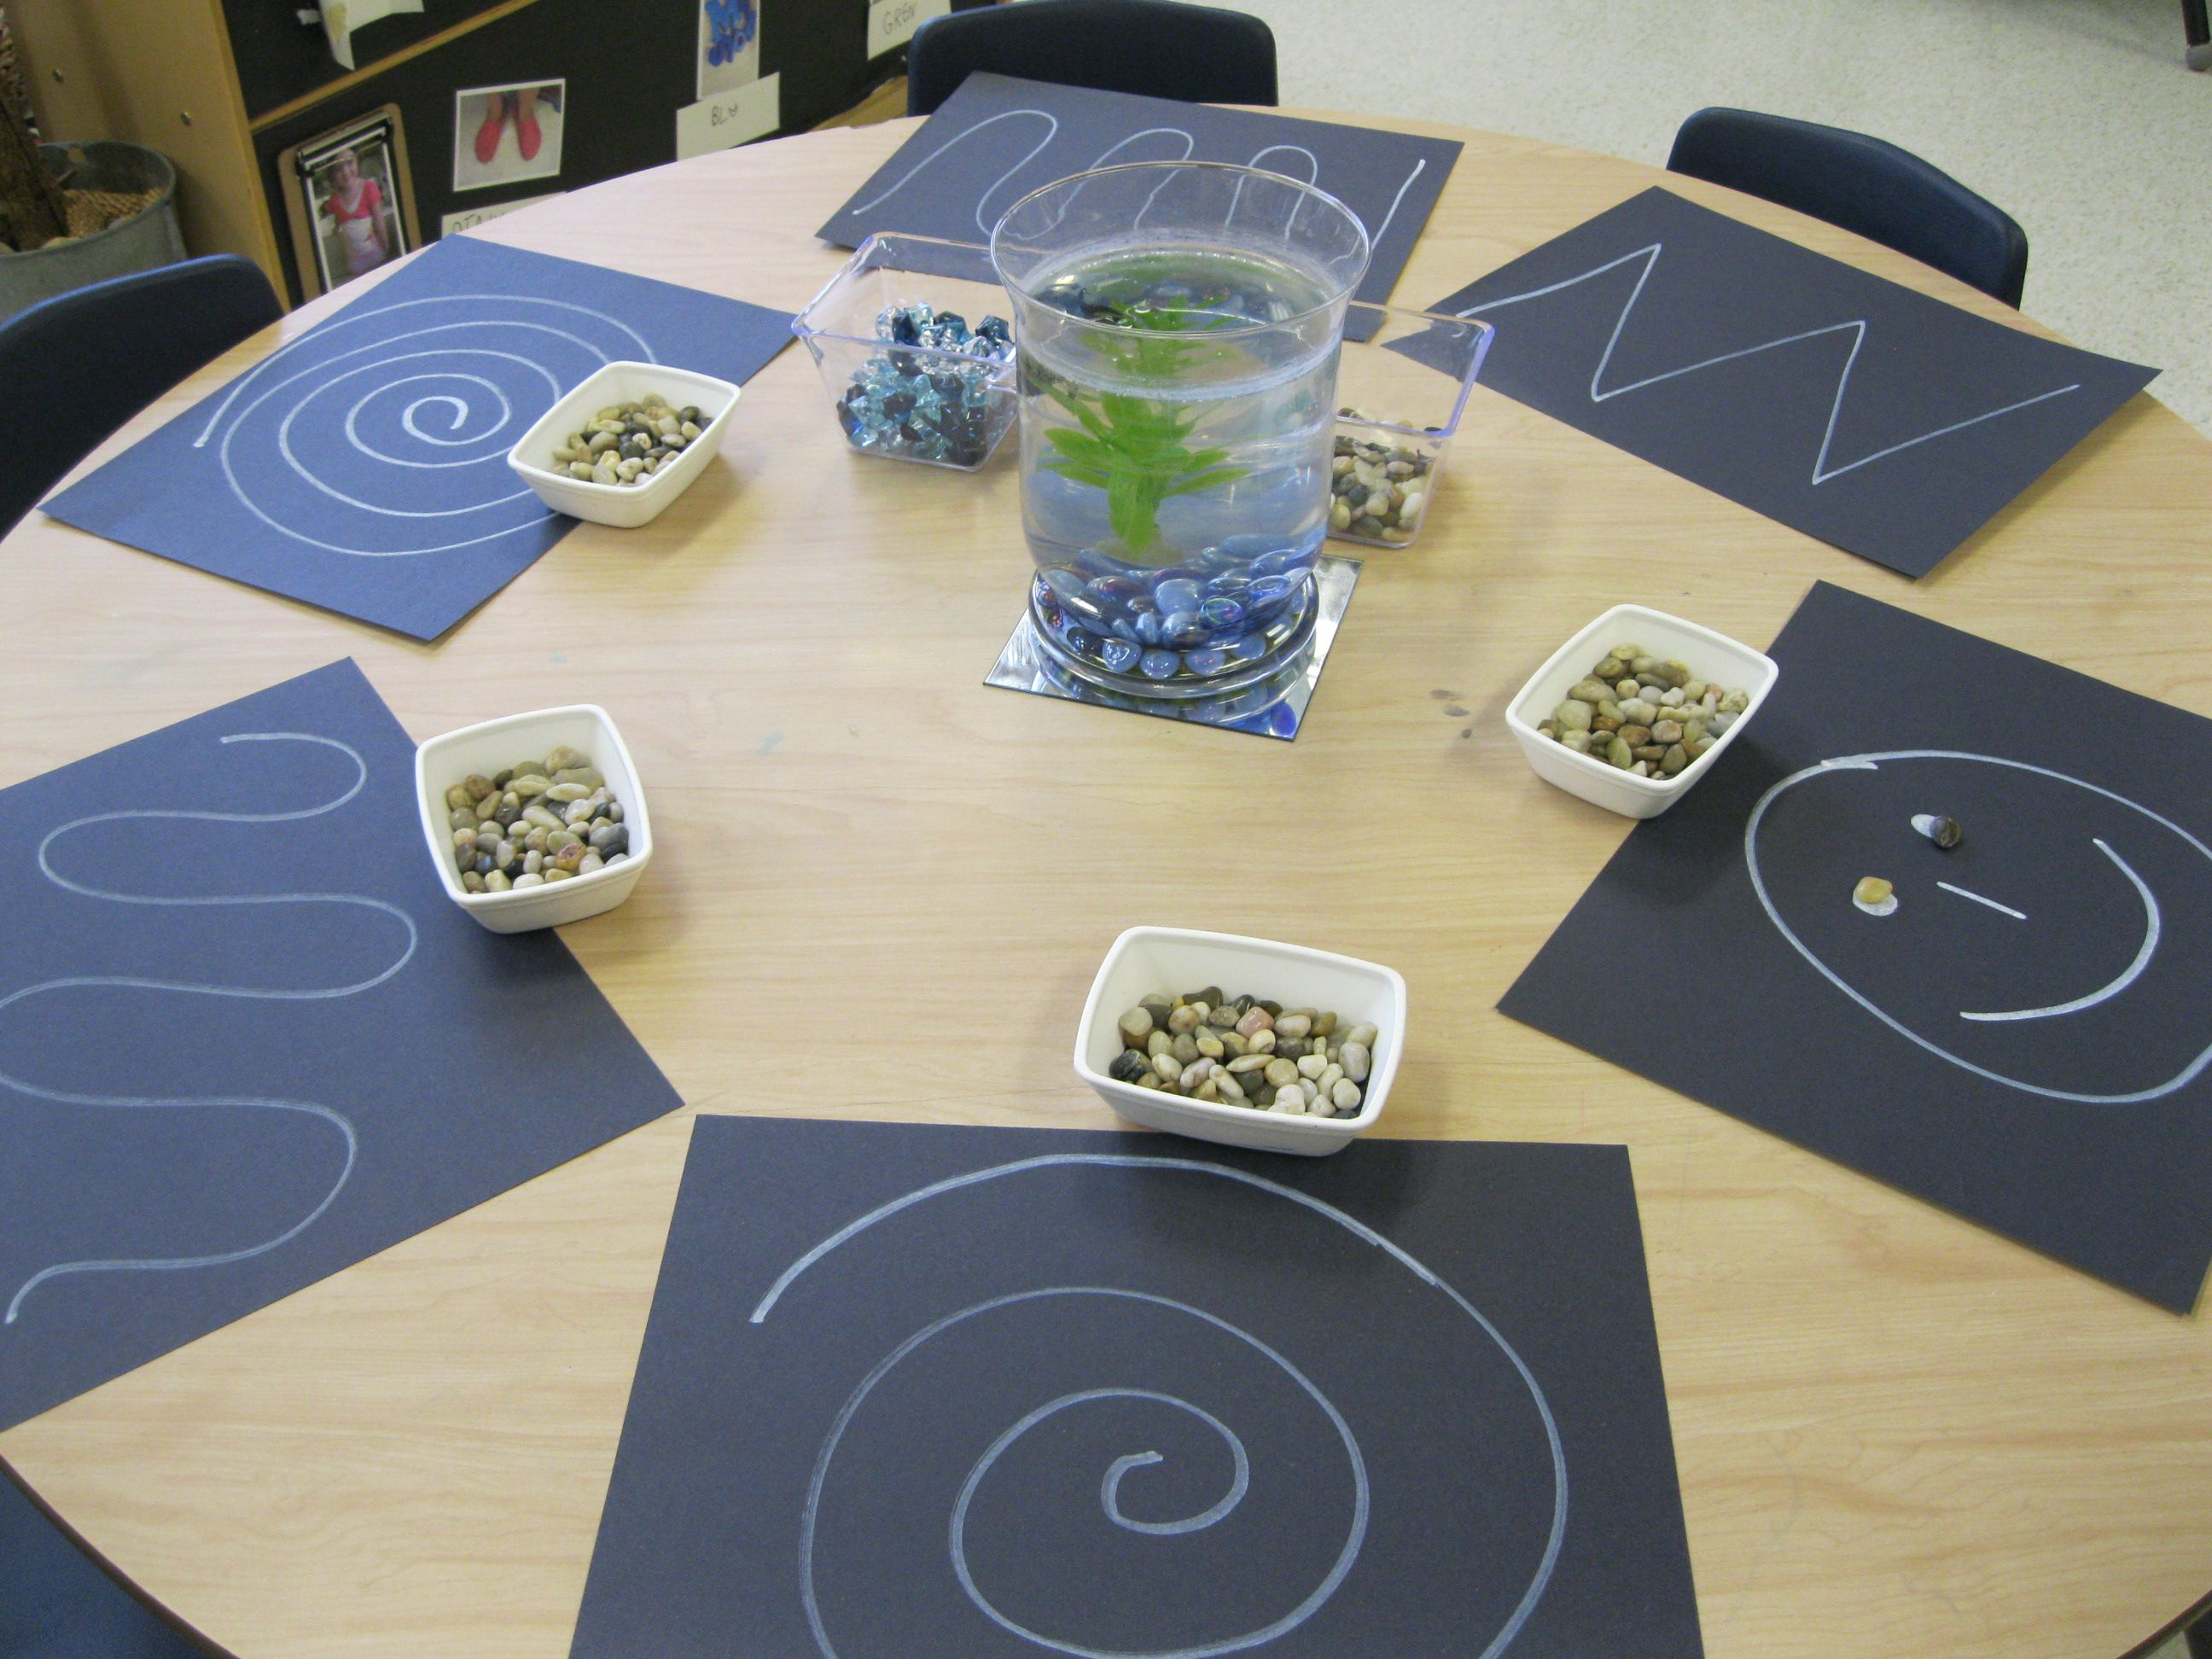 Great For Fine Motor Control Trace The Shapes With Beans Or Small Manipulatives To Make Designs